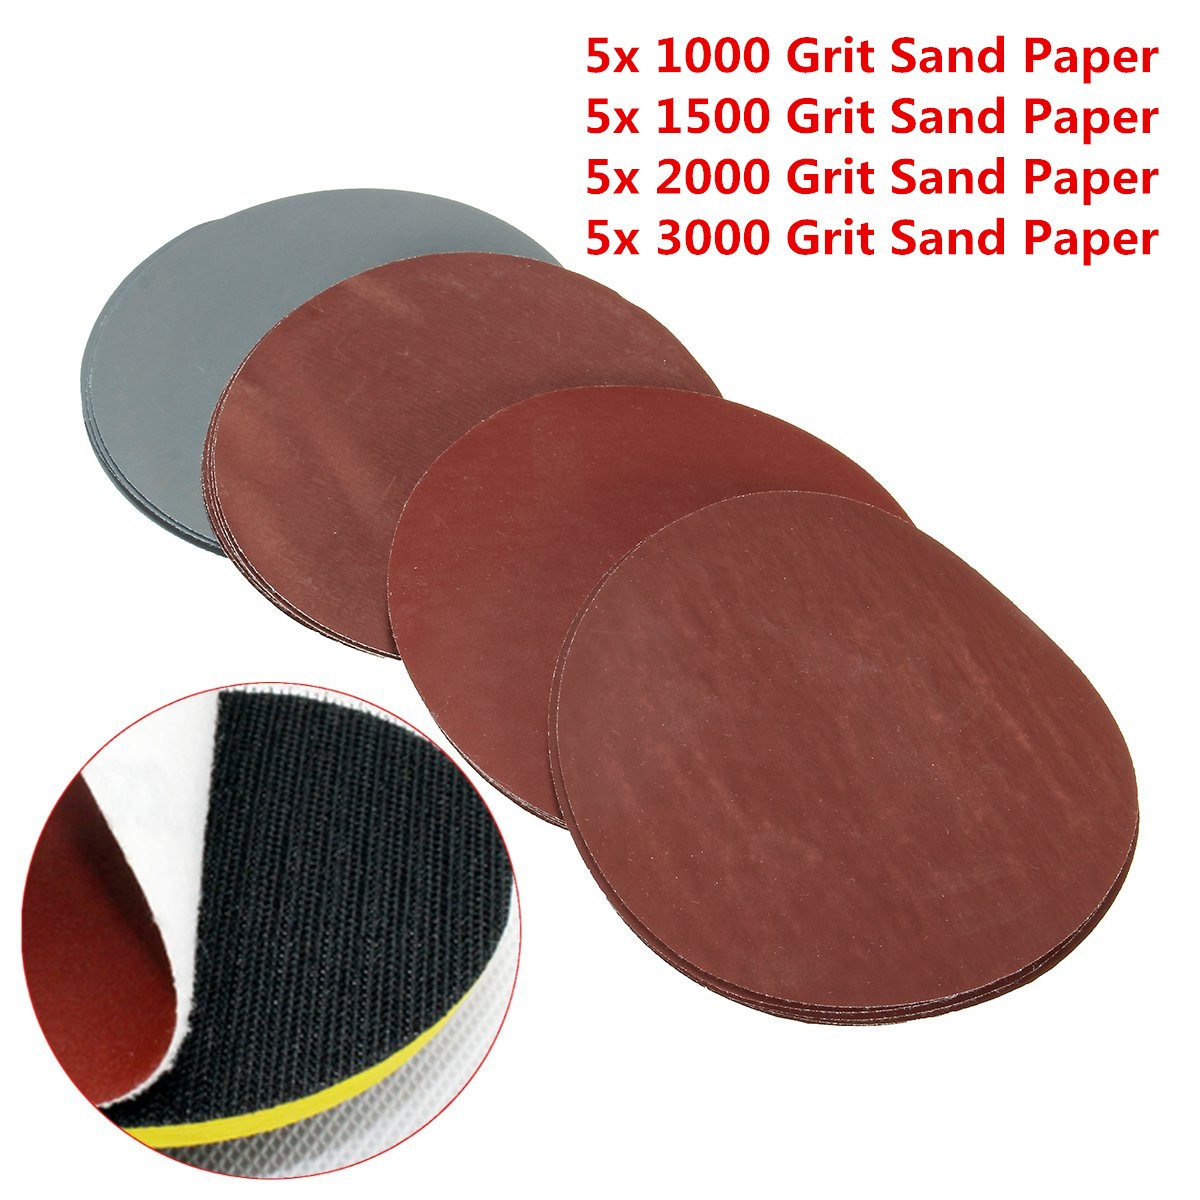 20Pcs 5inch 123mm Round Sanding Discs 1000# 1500# 2000# 3000# Grit Hook Loop Polishing Sandpaper Abrasive Tool For Wood Metal